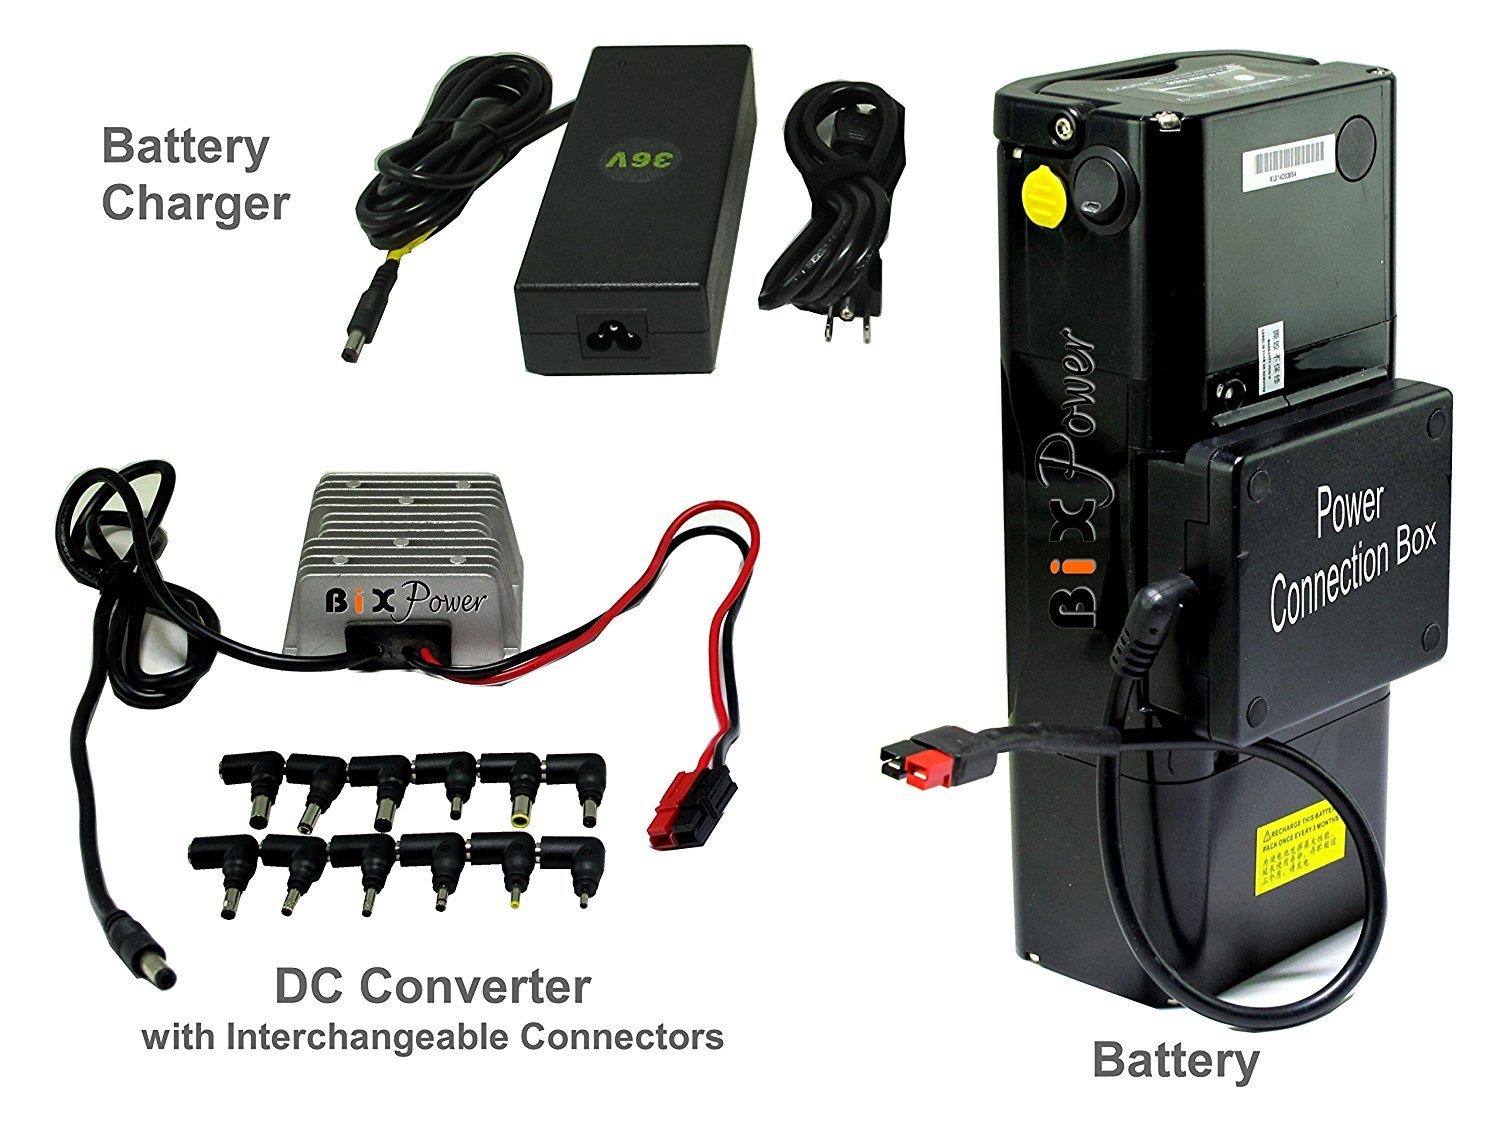 BiXPower Super Capacity (504 Watt-Hour) Battery Pack with 19V Power Converter - DP500-19V